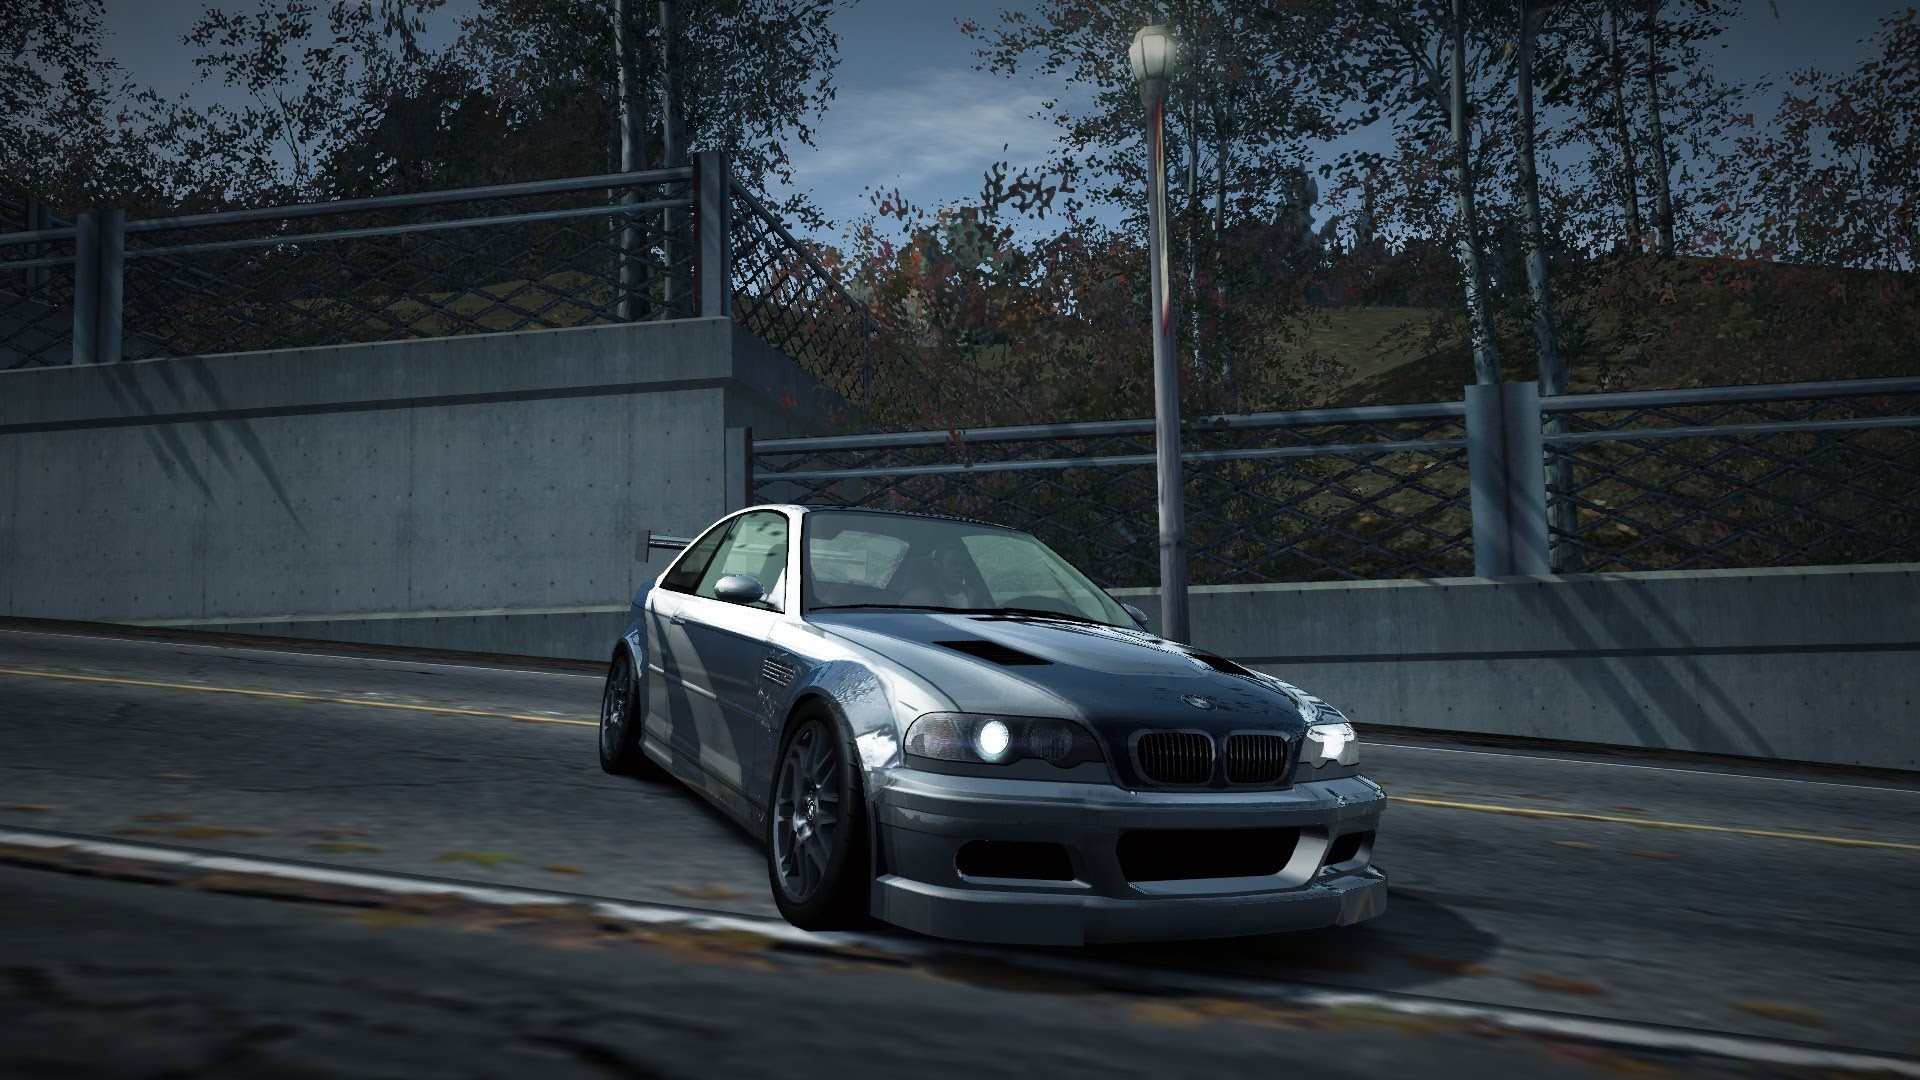 Bmw E46 M3 Gtr Wallpapers (56+ background pictures)